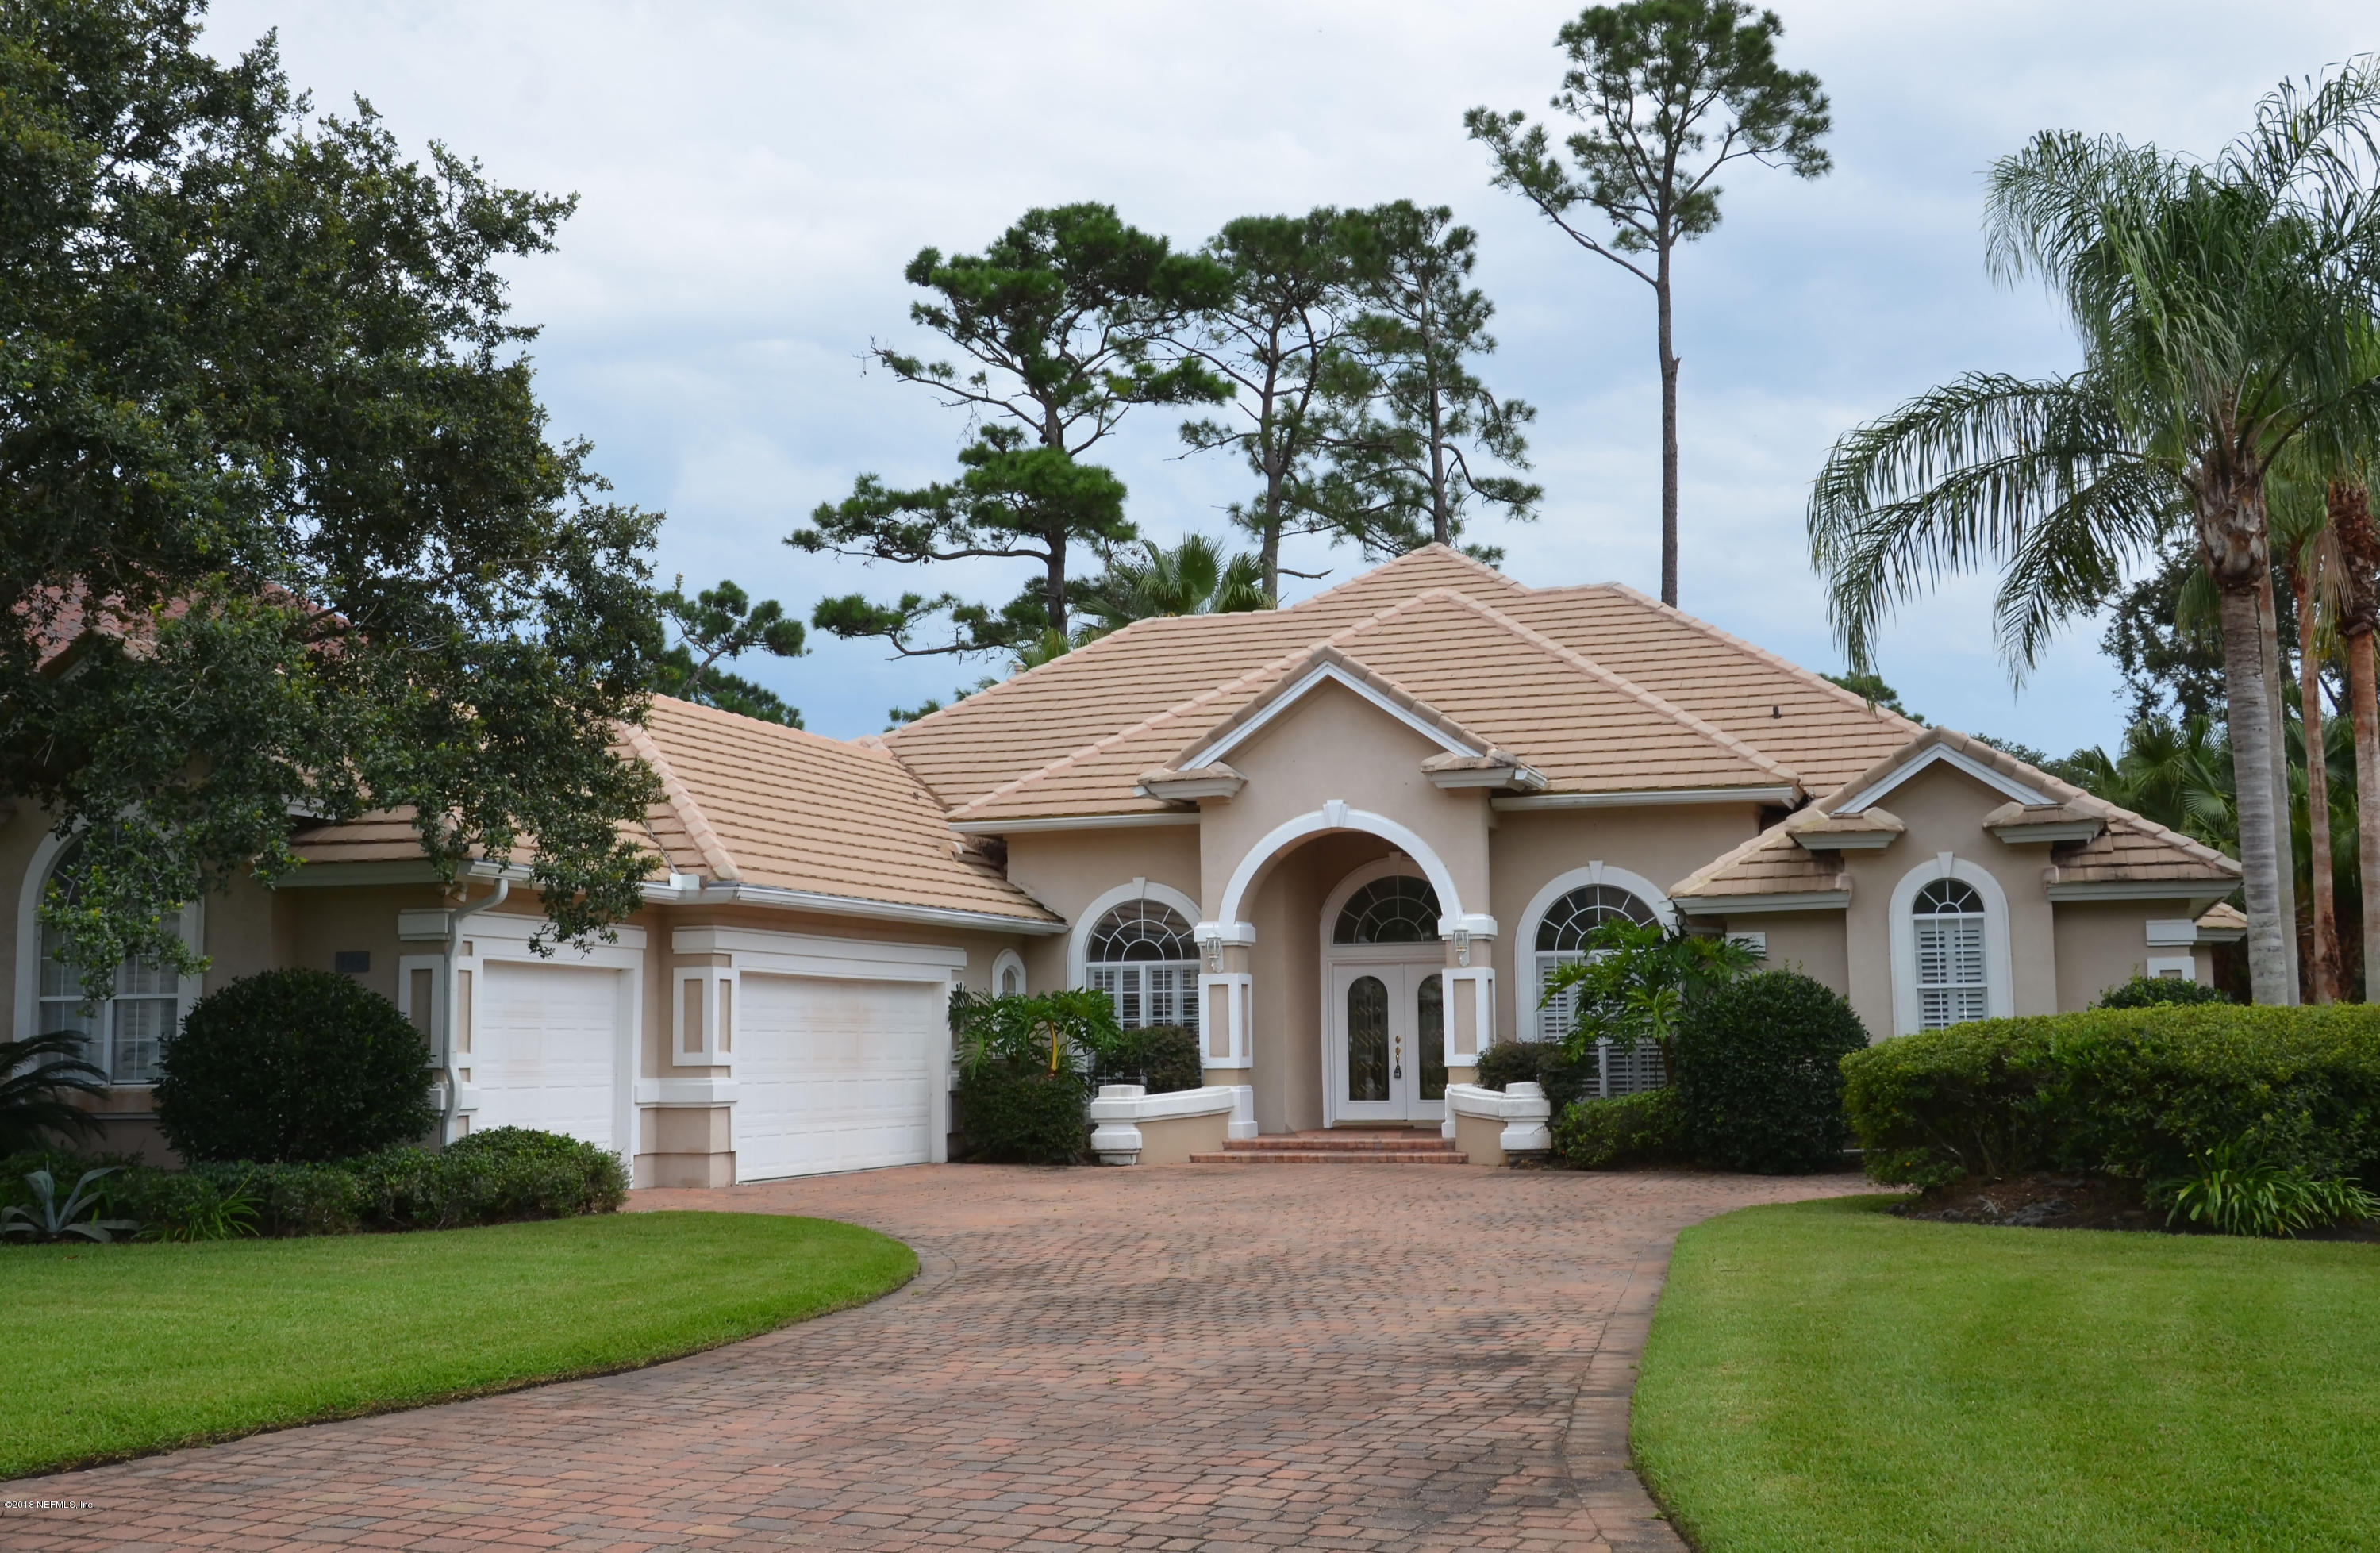 148 RETREAT, PONTE VEDRA BEACH, FLORIDA 32082, 4 Bedrooms Bedrooms, ,4 BathroomsBathrooms,Residential - single family,For sale,RETREAT,948858